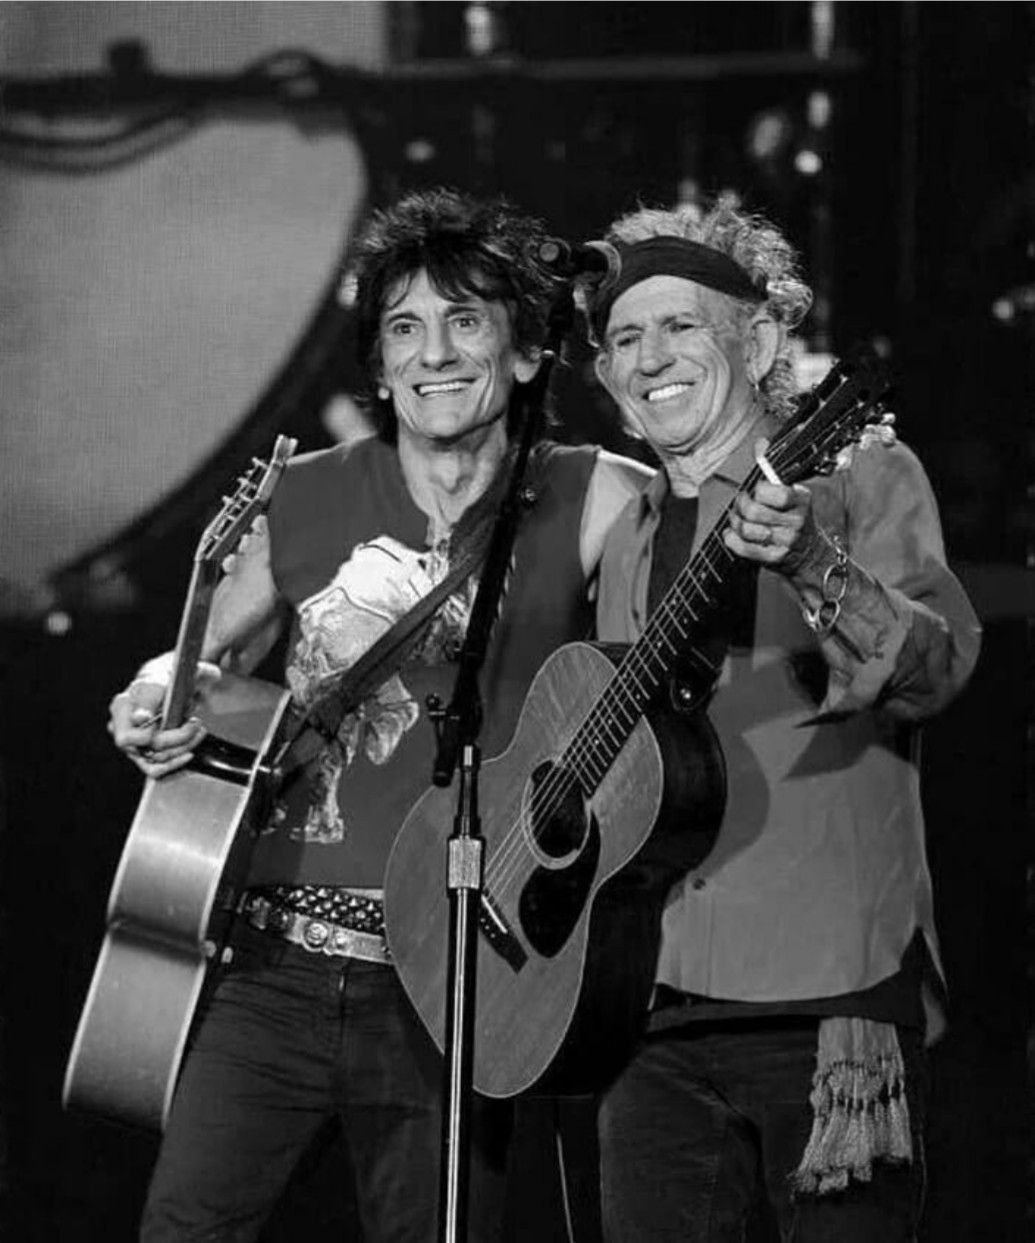 Ron and Keith | Keith richards, Rolling stones, Ronnie wood